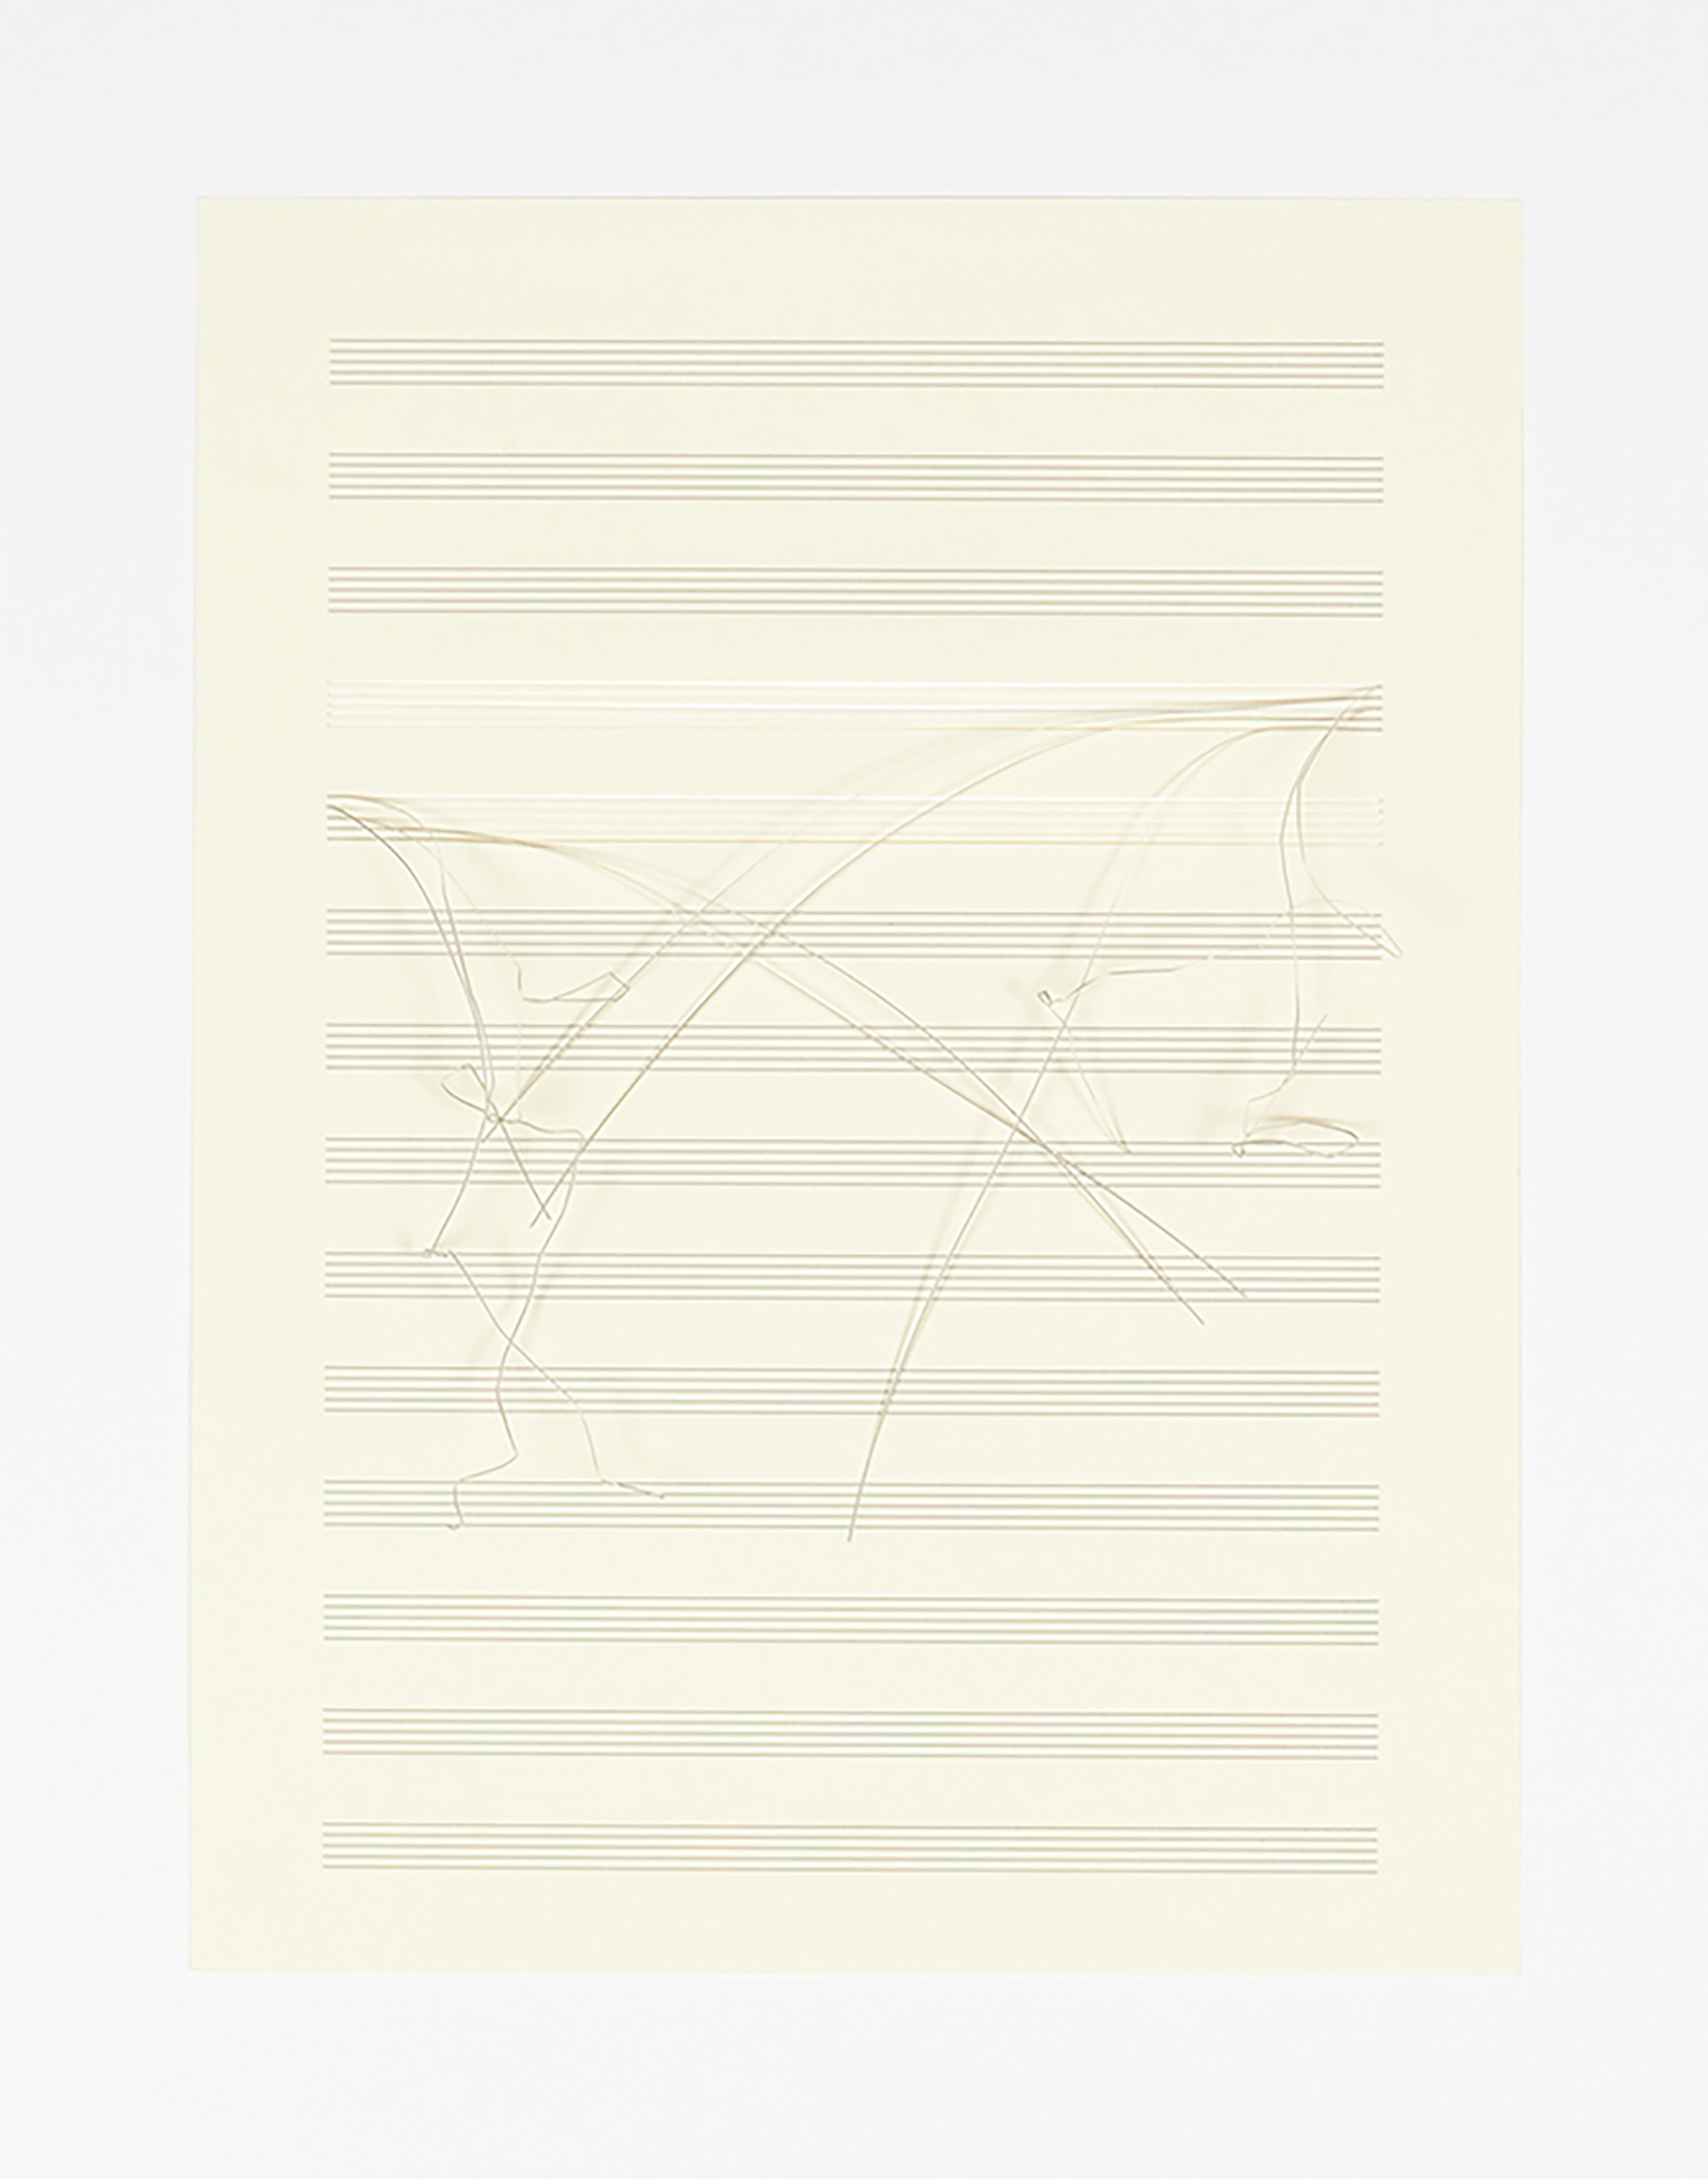 roman pfeffer, contemporary artist, sheet music manuscript paper, framed artwork, artist to watch